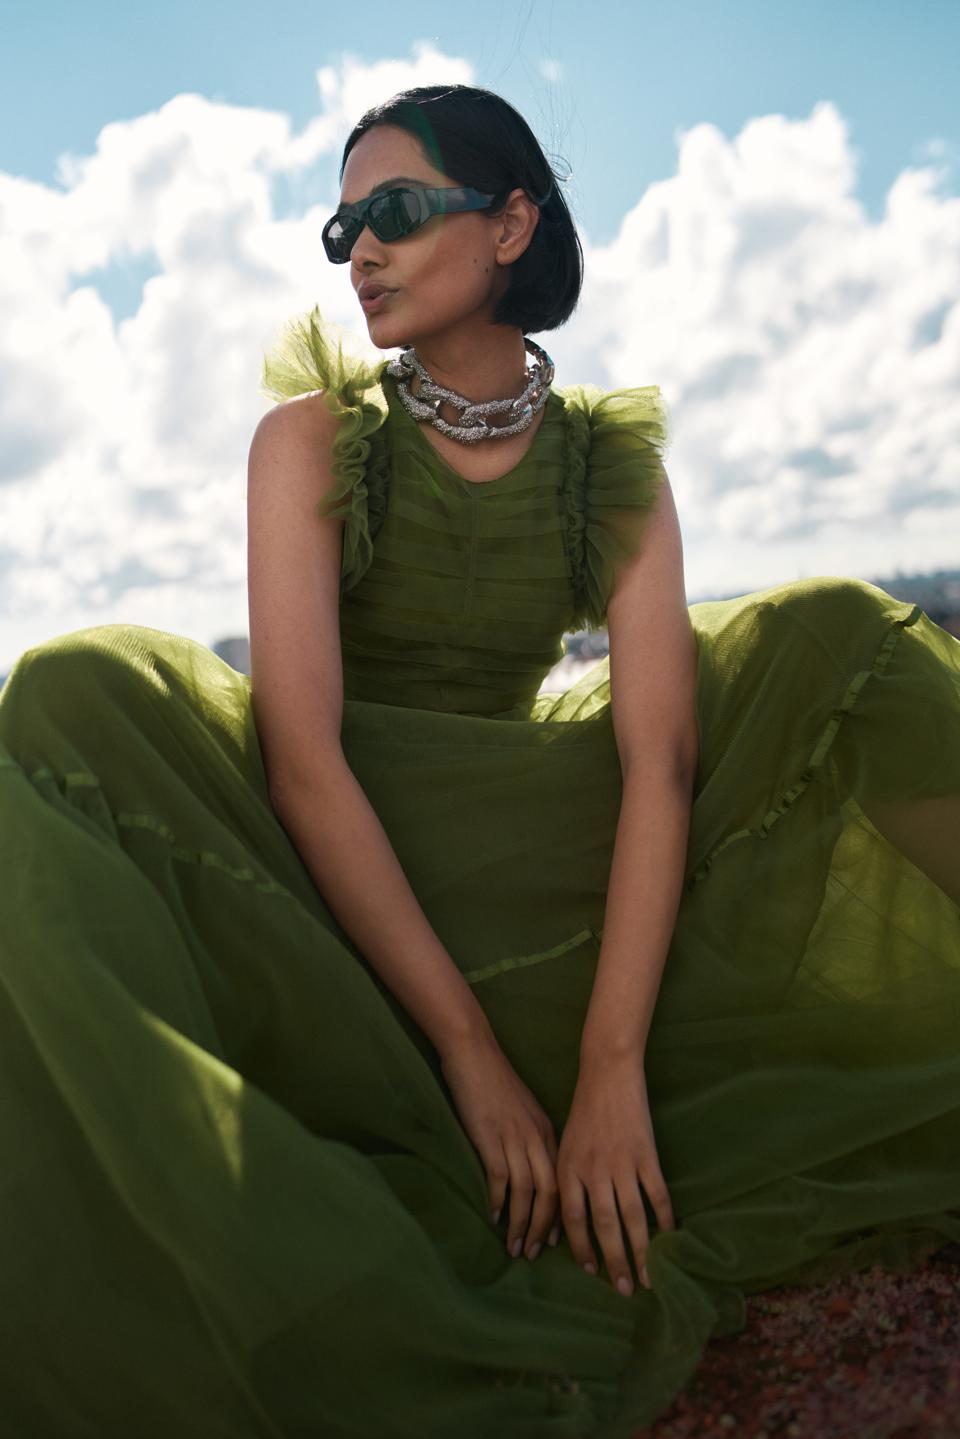 Zinnia Kumar, H&M Conscious Exclusive A/W20 collection campaign.